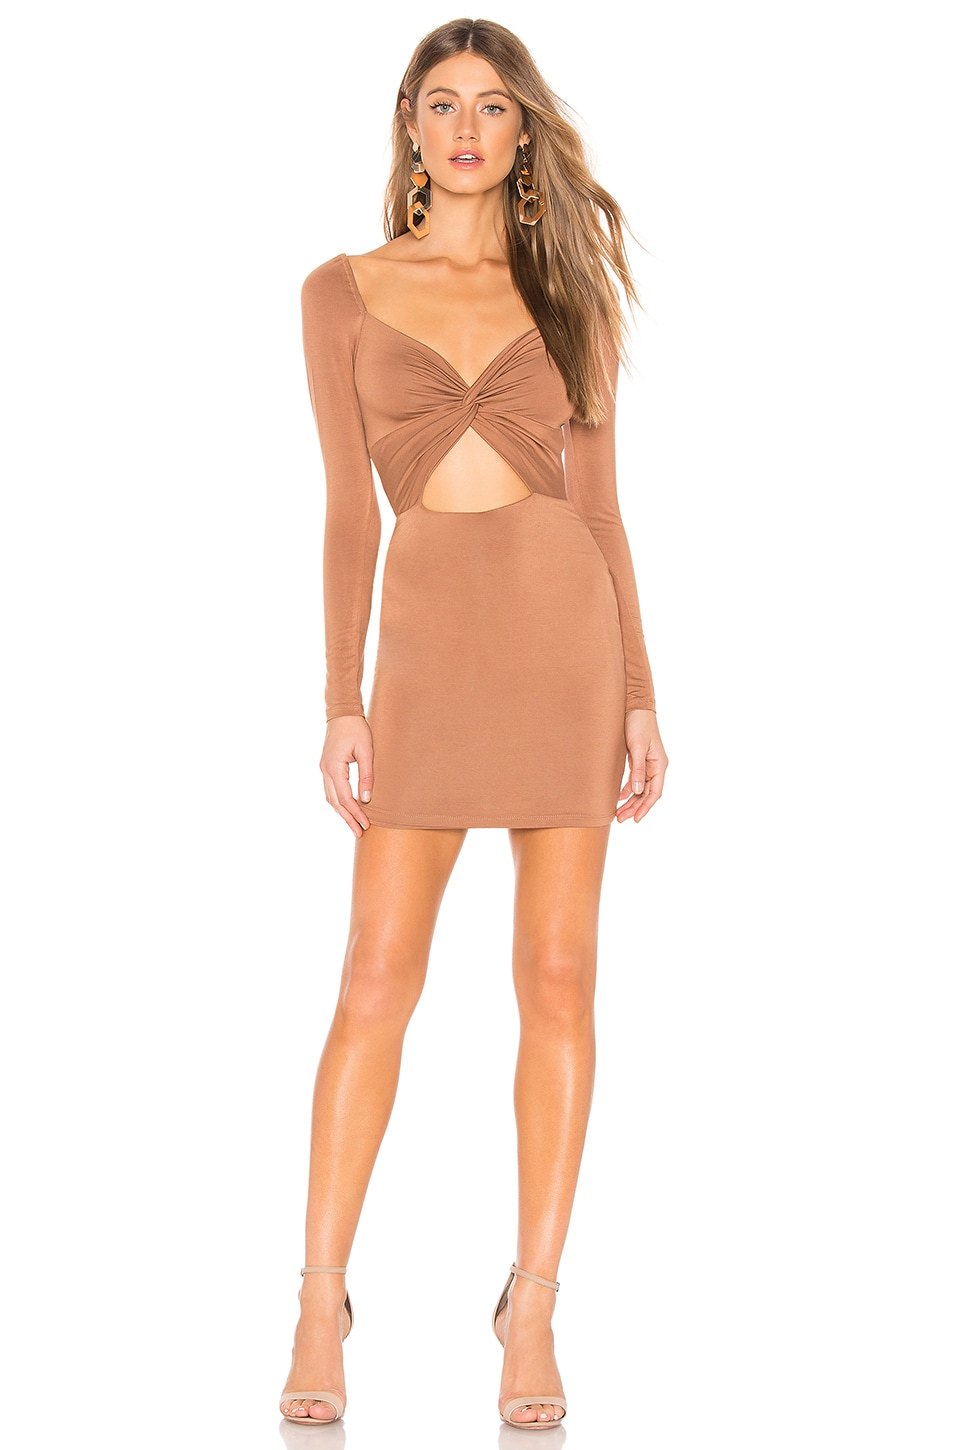 Privacy Please Adelaide Mini Dress in Cocoa